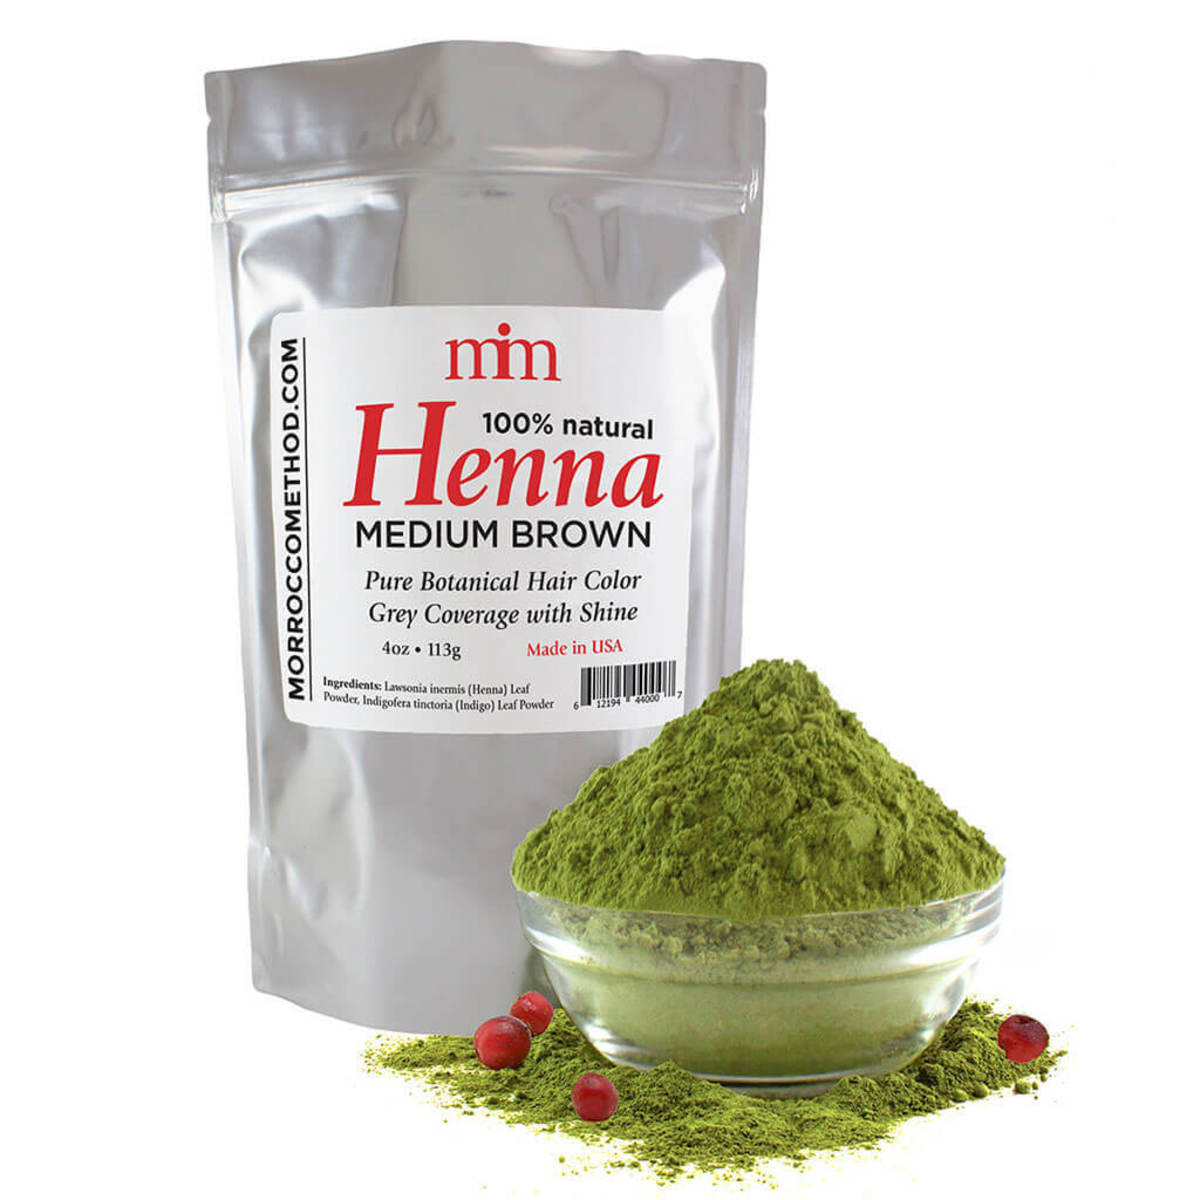 This is the henna dye this tutorial is based on.